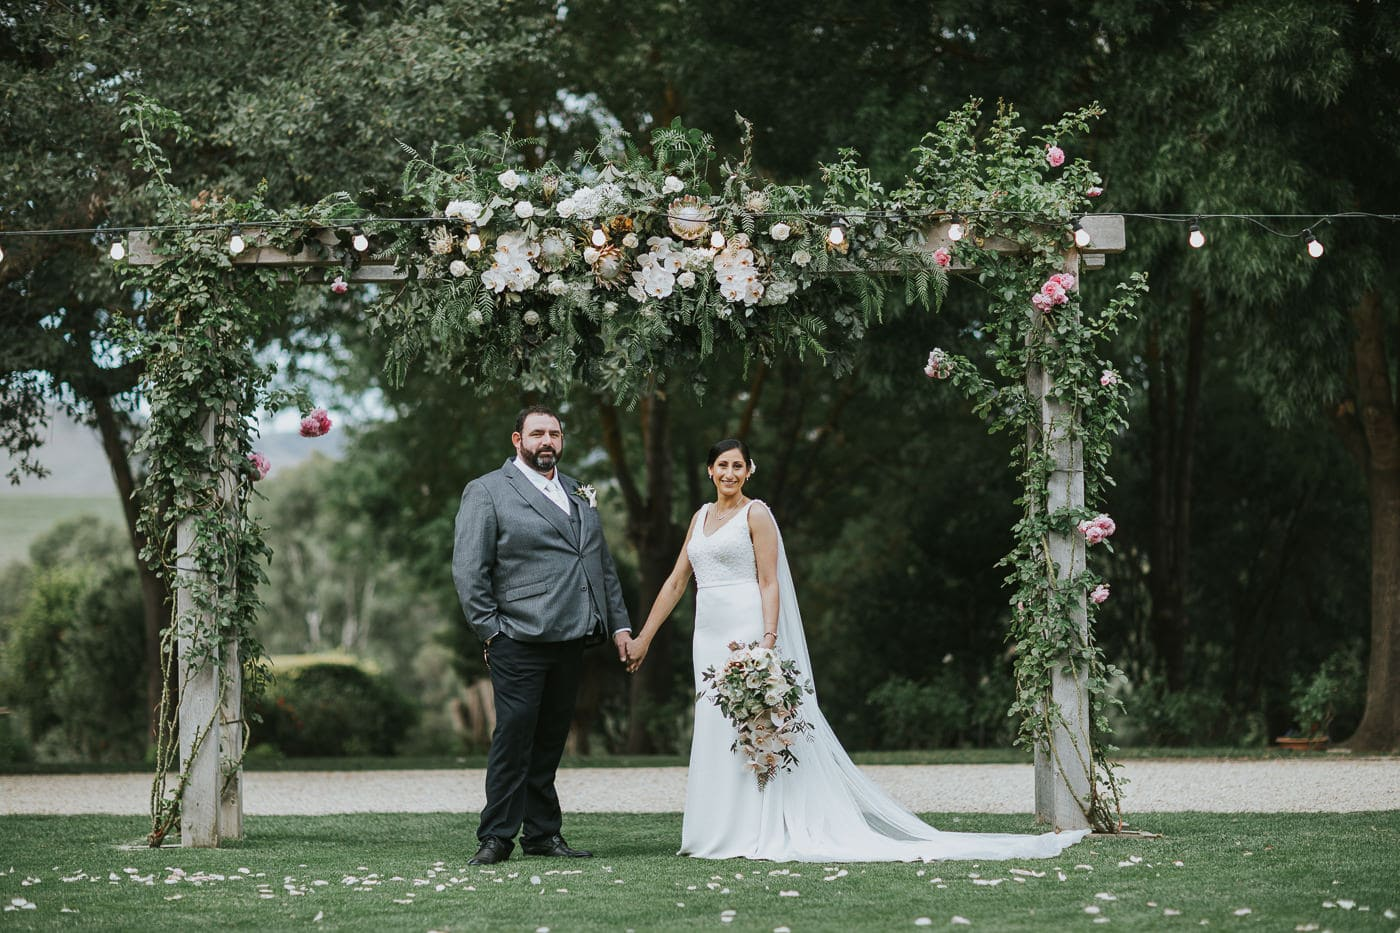 briode and groom under arbour after ceremony - Wedding venue in country victoria close to Melbourne and the Yarra Valley - Wedding Photographer captures candid and natural photos at wedding at Flowerdale Estate